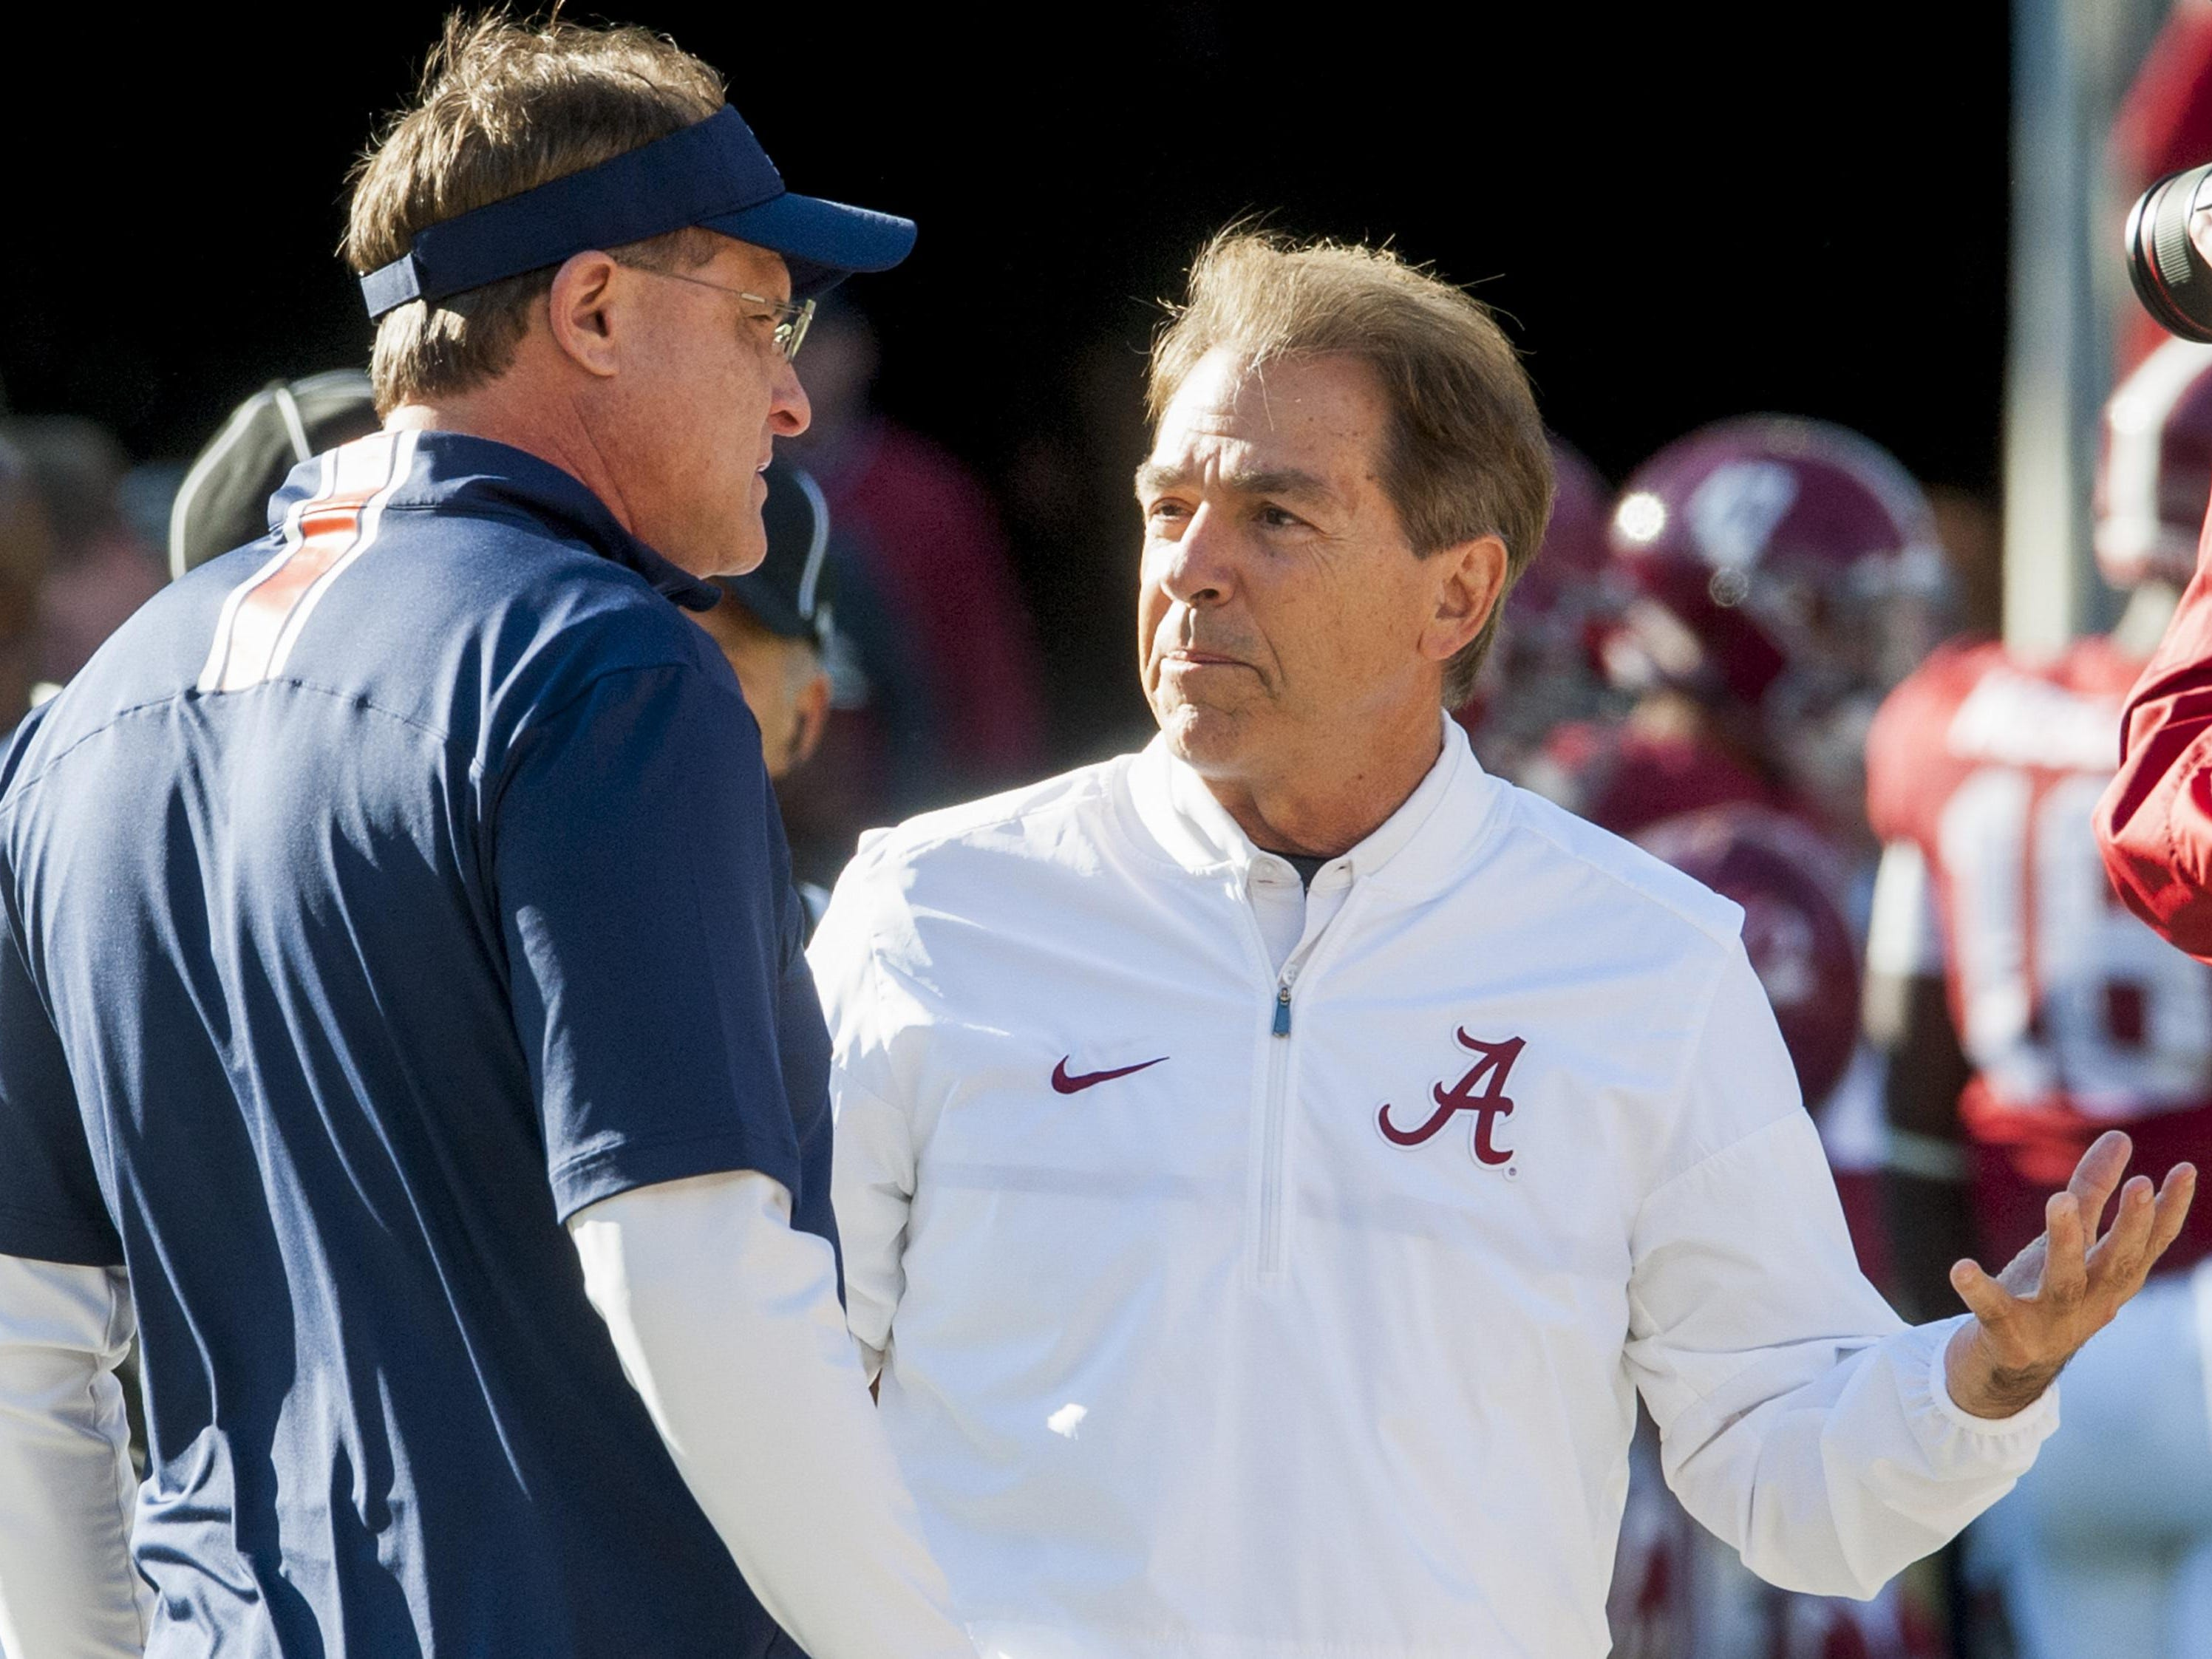 Auburn head coach Gus Malzahn and Alabama head coach Nick Saban chat at midfield before the Iron Bowl at Bryant Denny Stadium in Tuscaloosa, Ala. on Saturday November 26, 2016. (Mickey Welsh / Montgomery Advertiser)